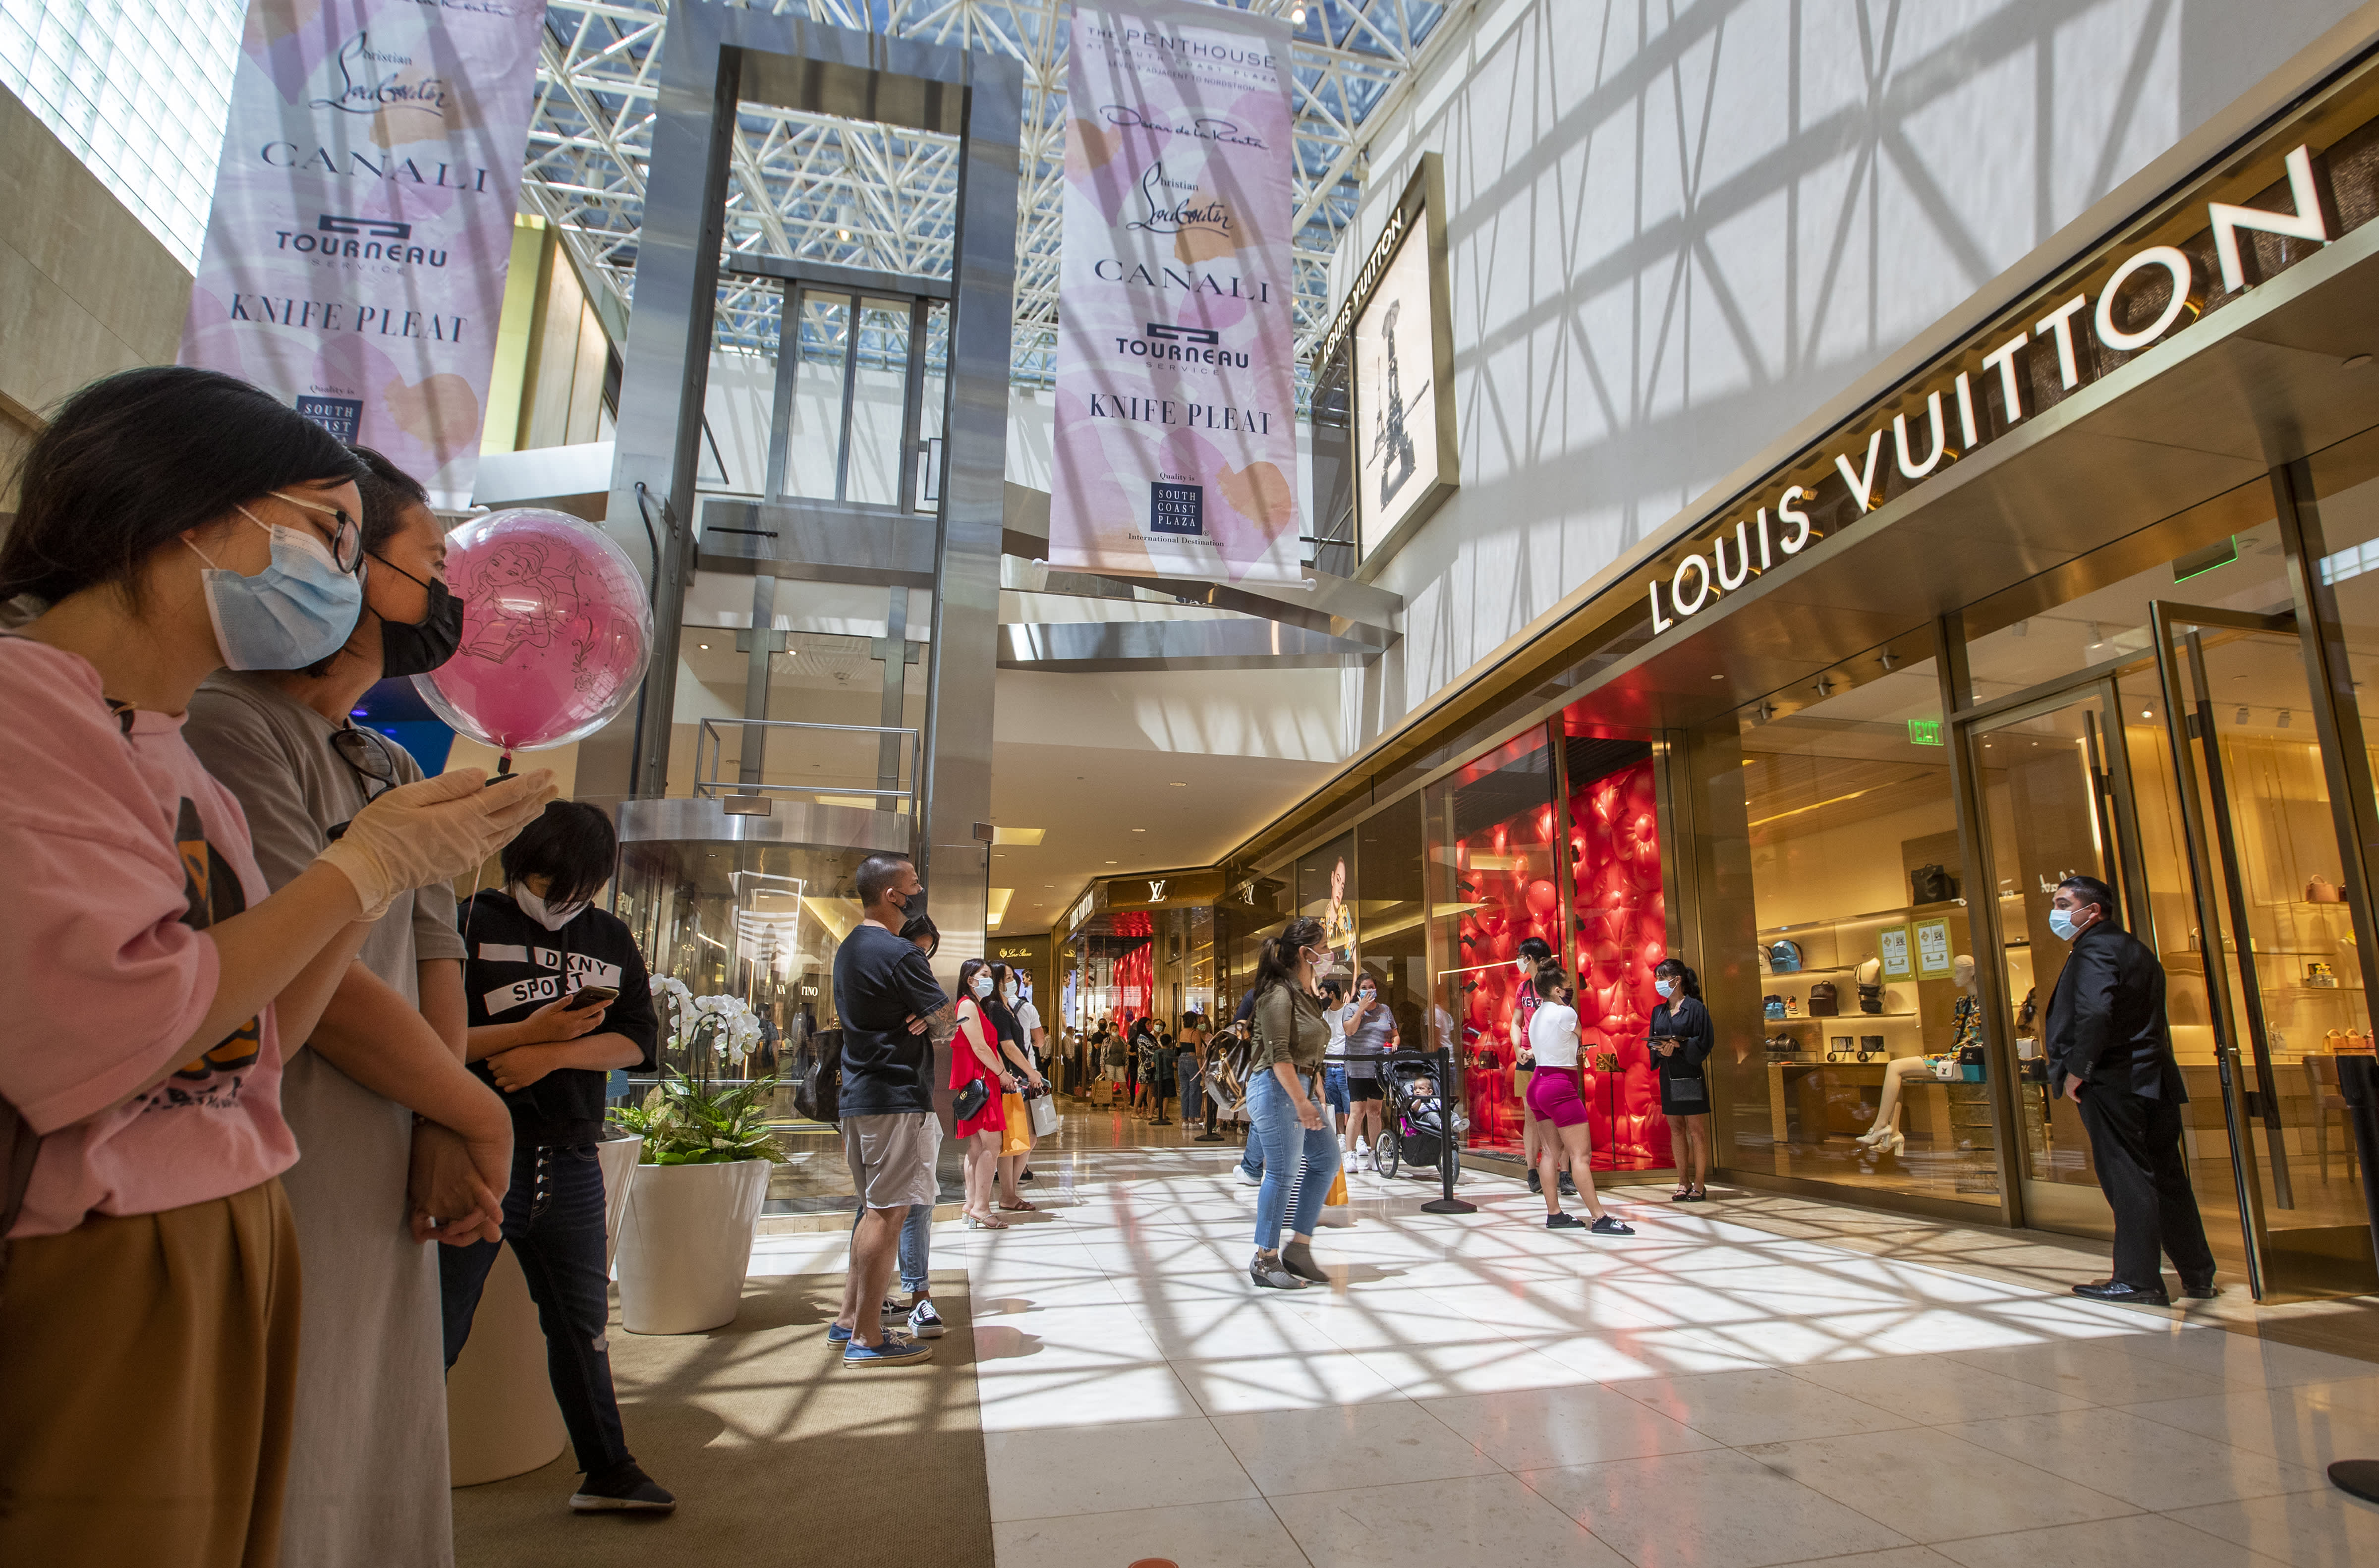 Louis Vuitton-owner LVMH believes the future of retail will be mostly in store